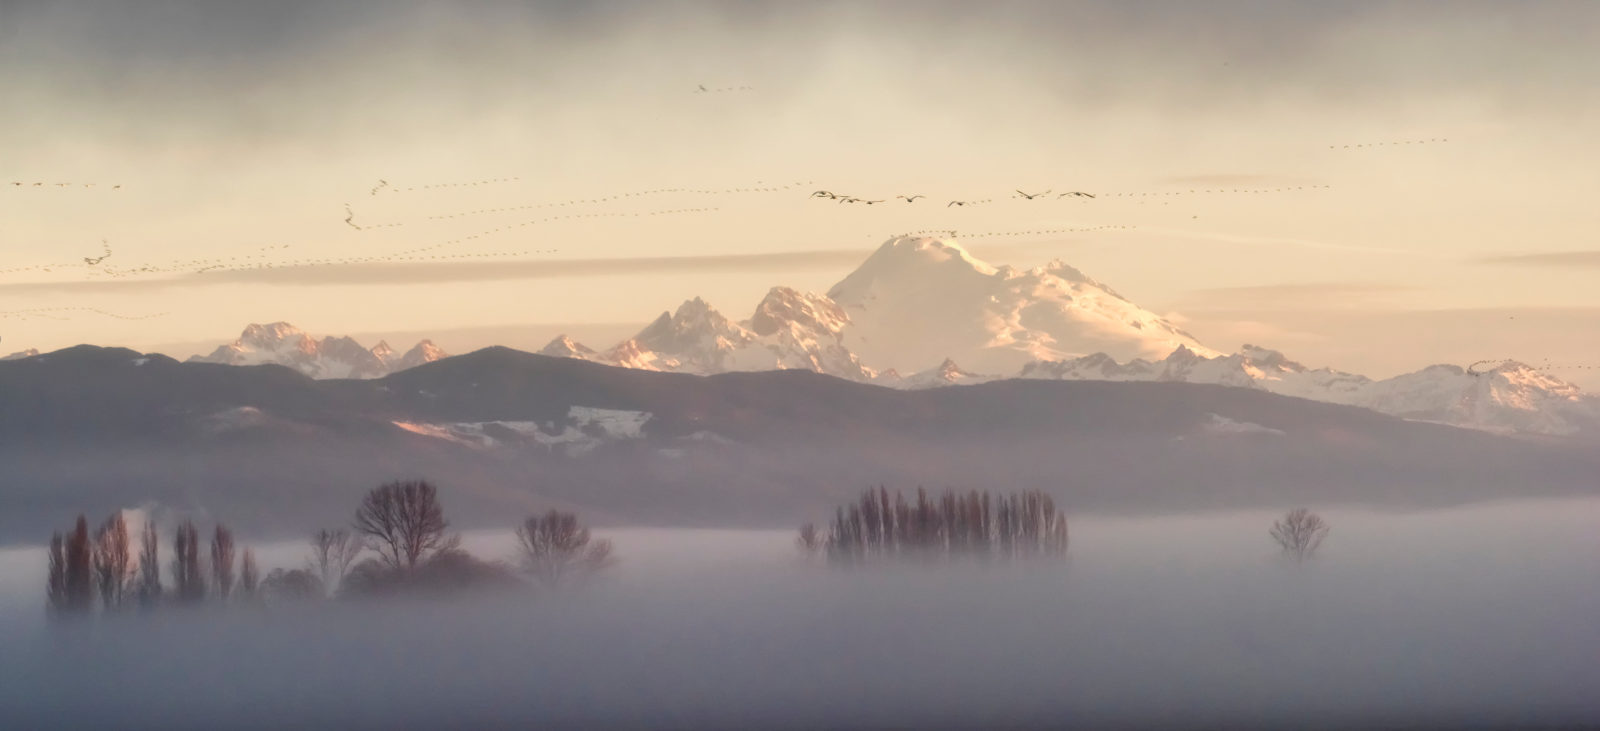 Fogging morning in Skagit Valley, WA